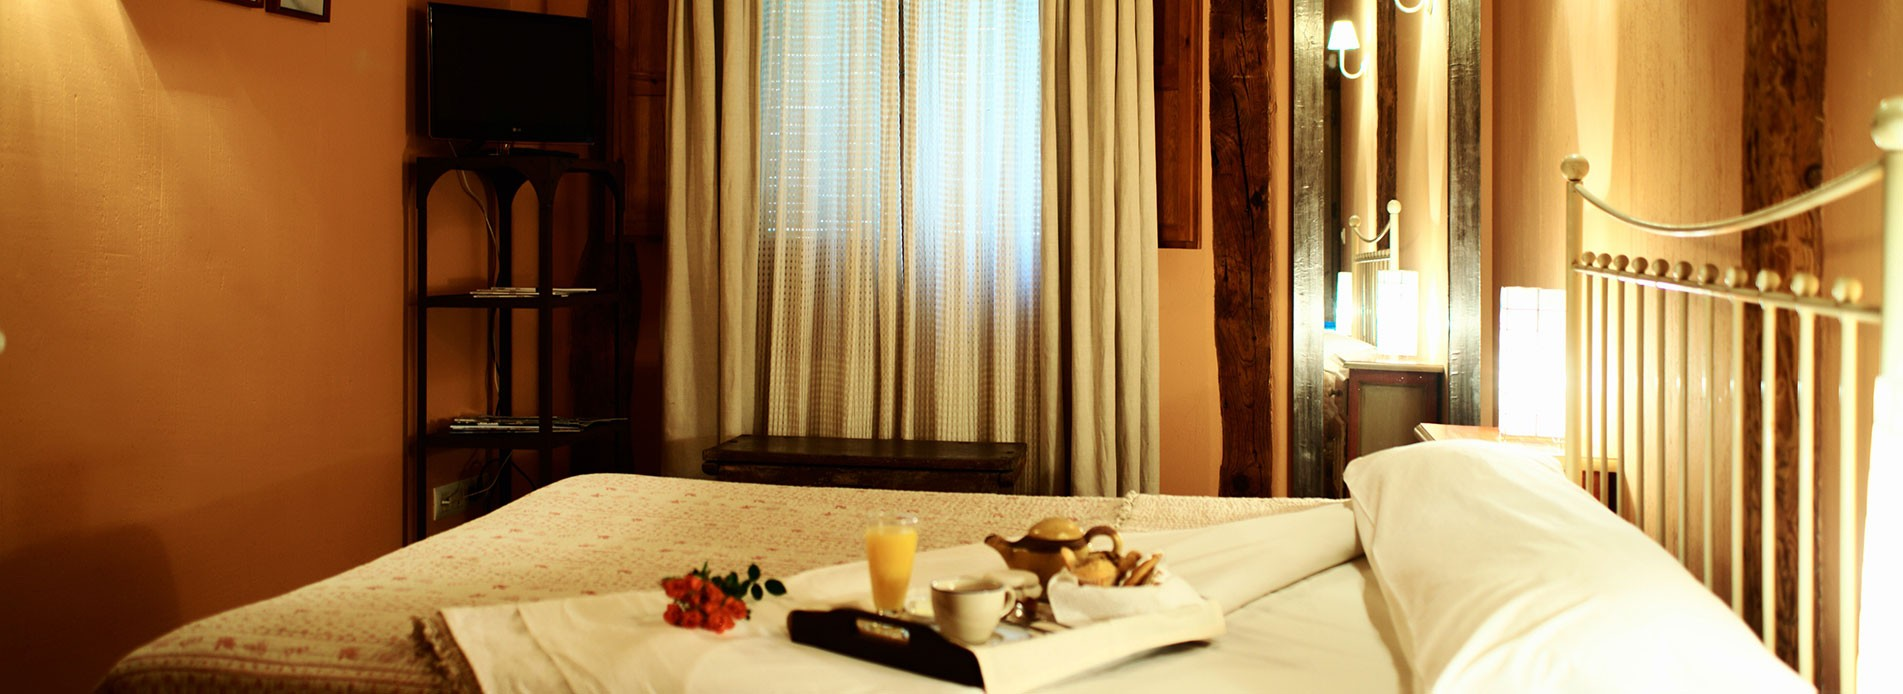 slider6-estancias-rurales-charming-hotels-segovia